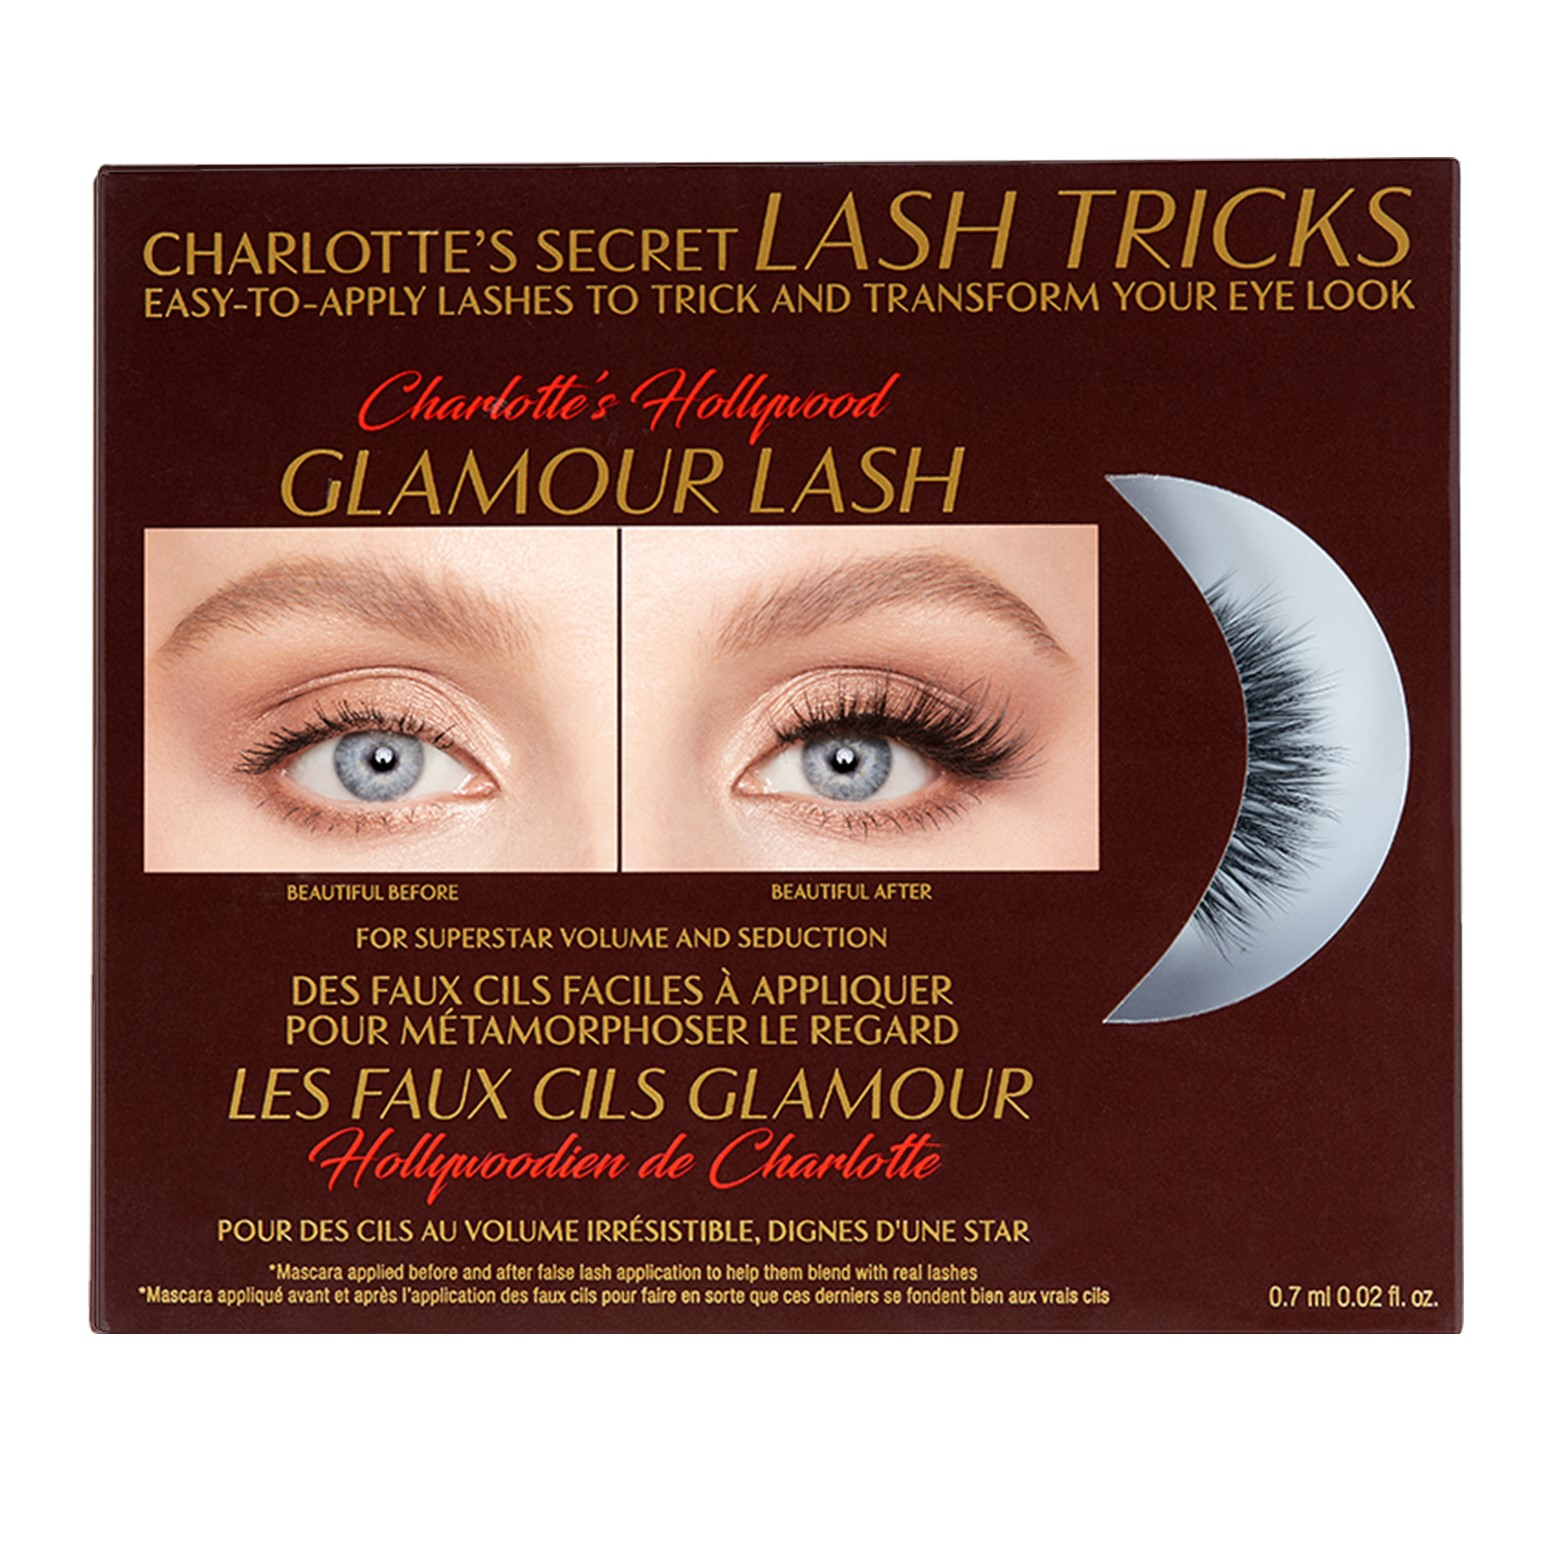 HOLLYWOOD GLAMOUR LASH